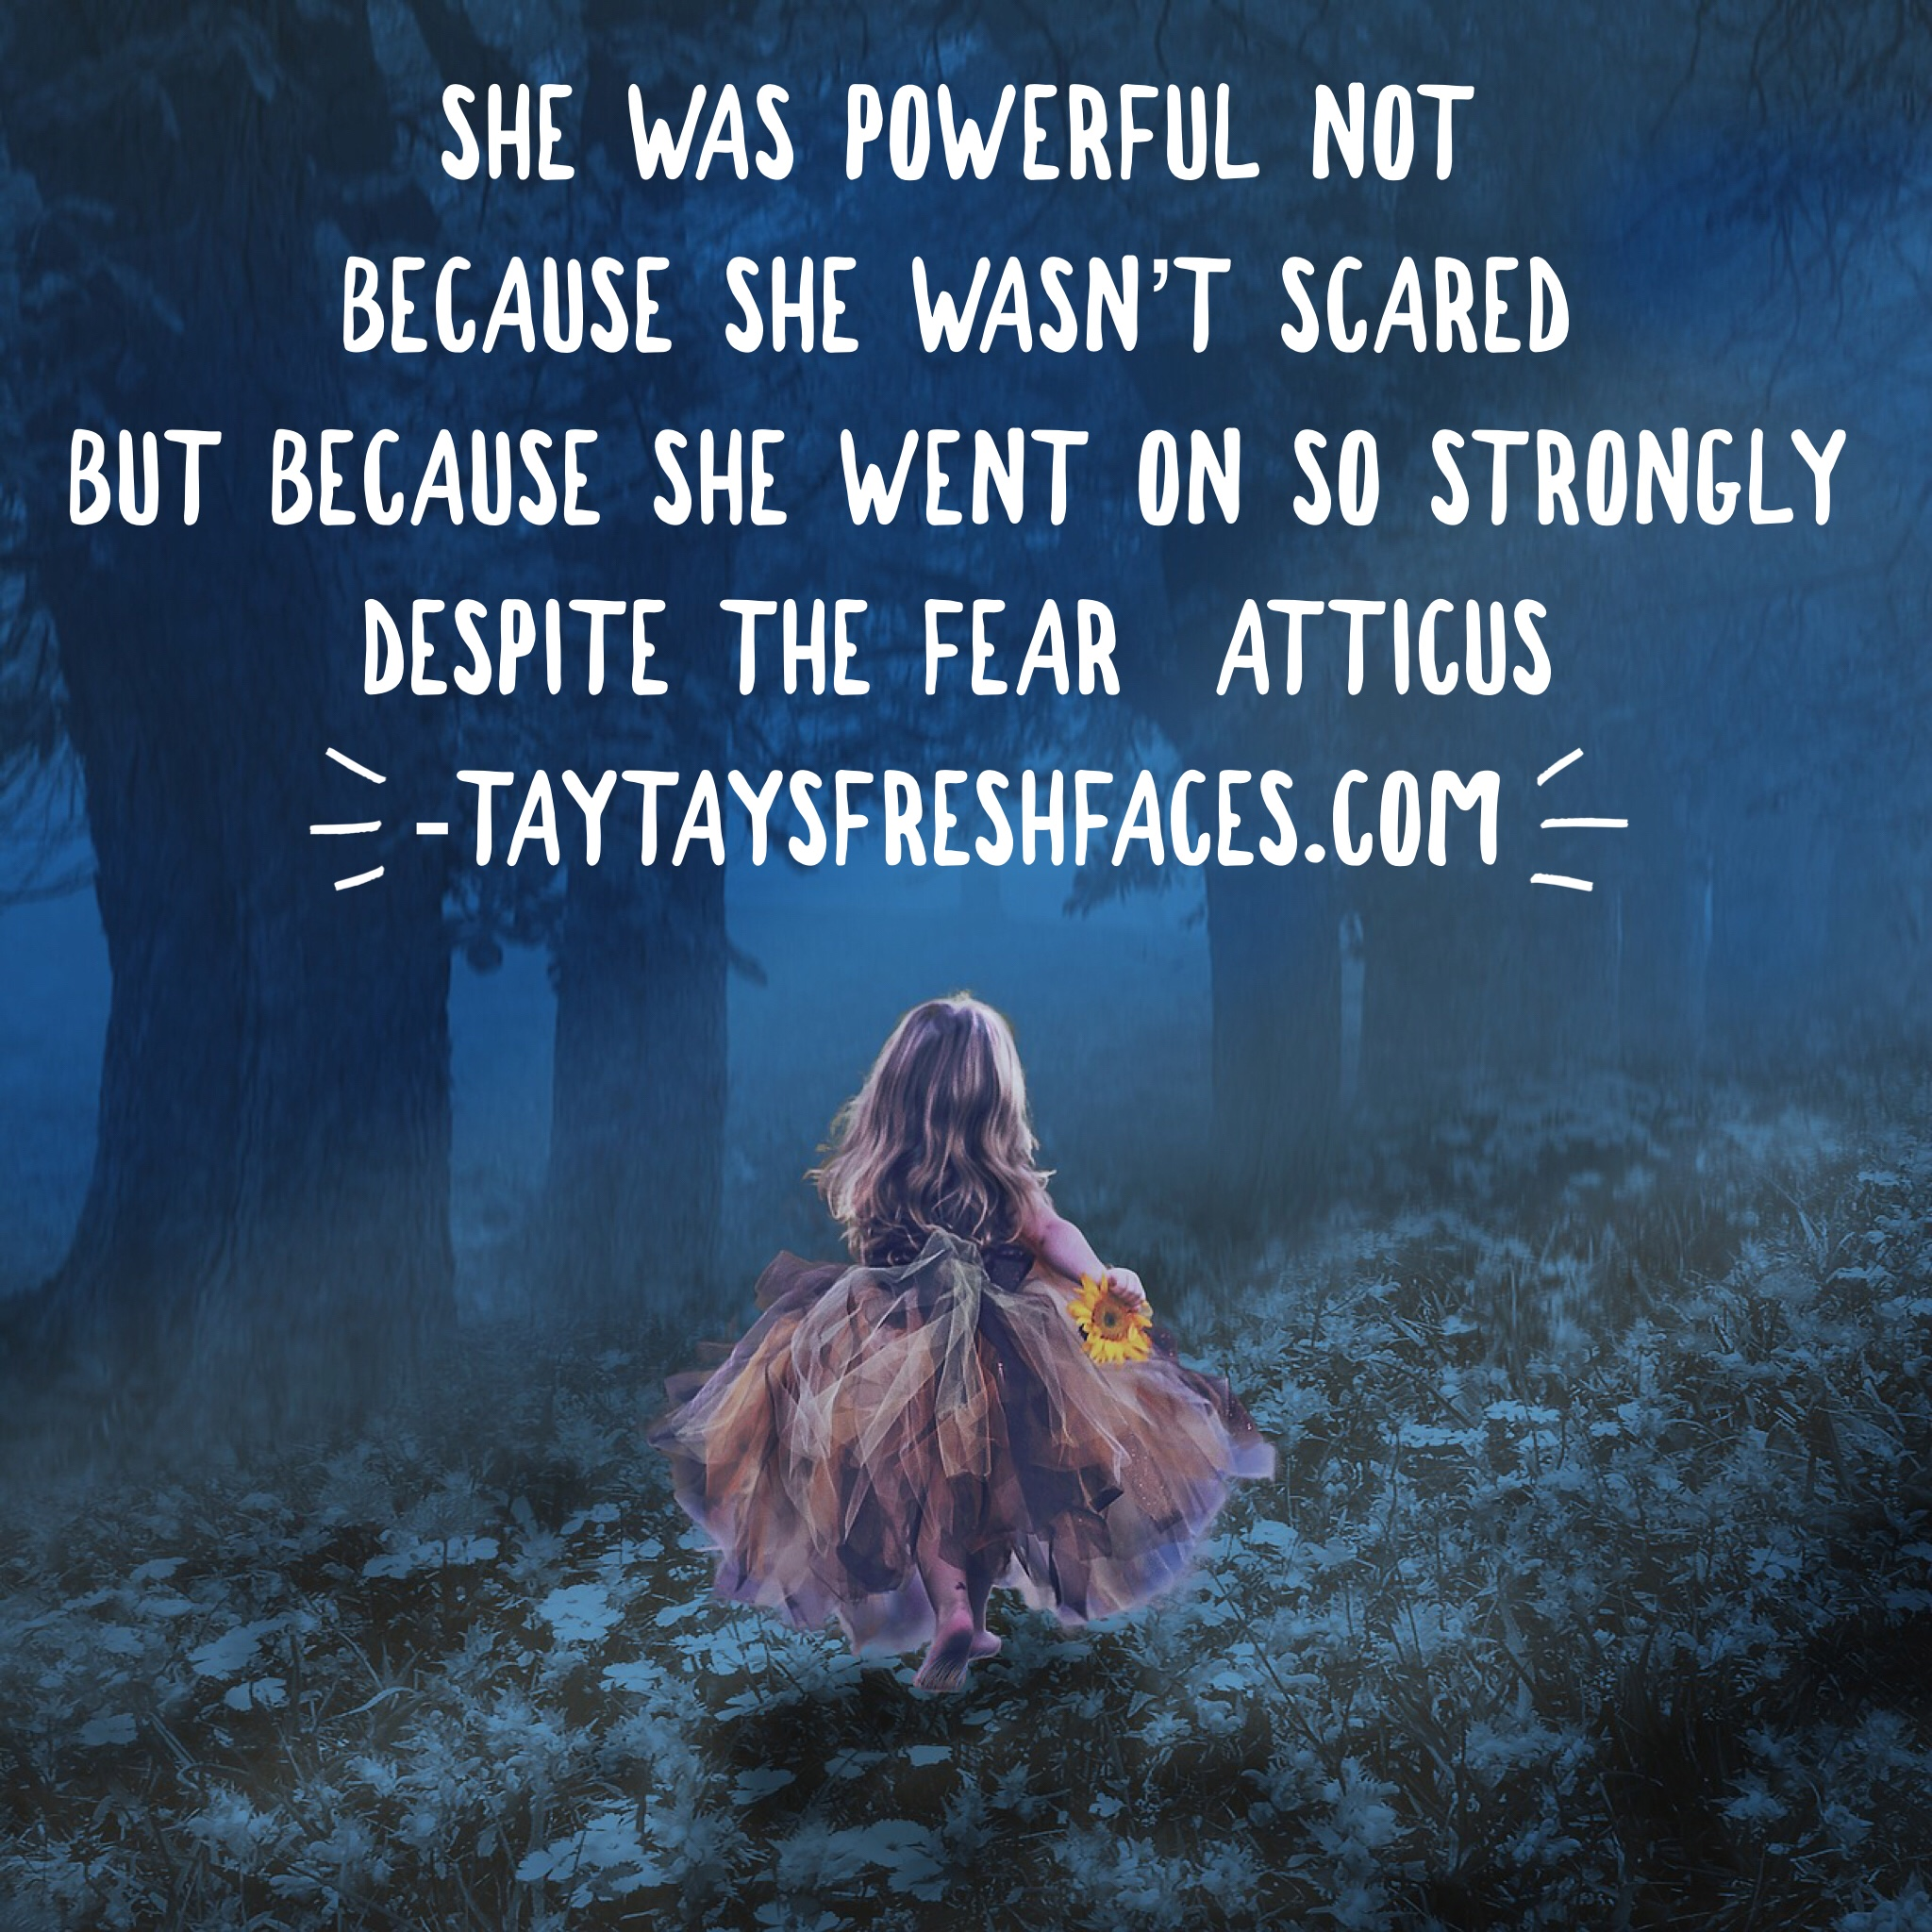 She Was Powerful Because She Felt The Fears And Moved On Despite Them